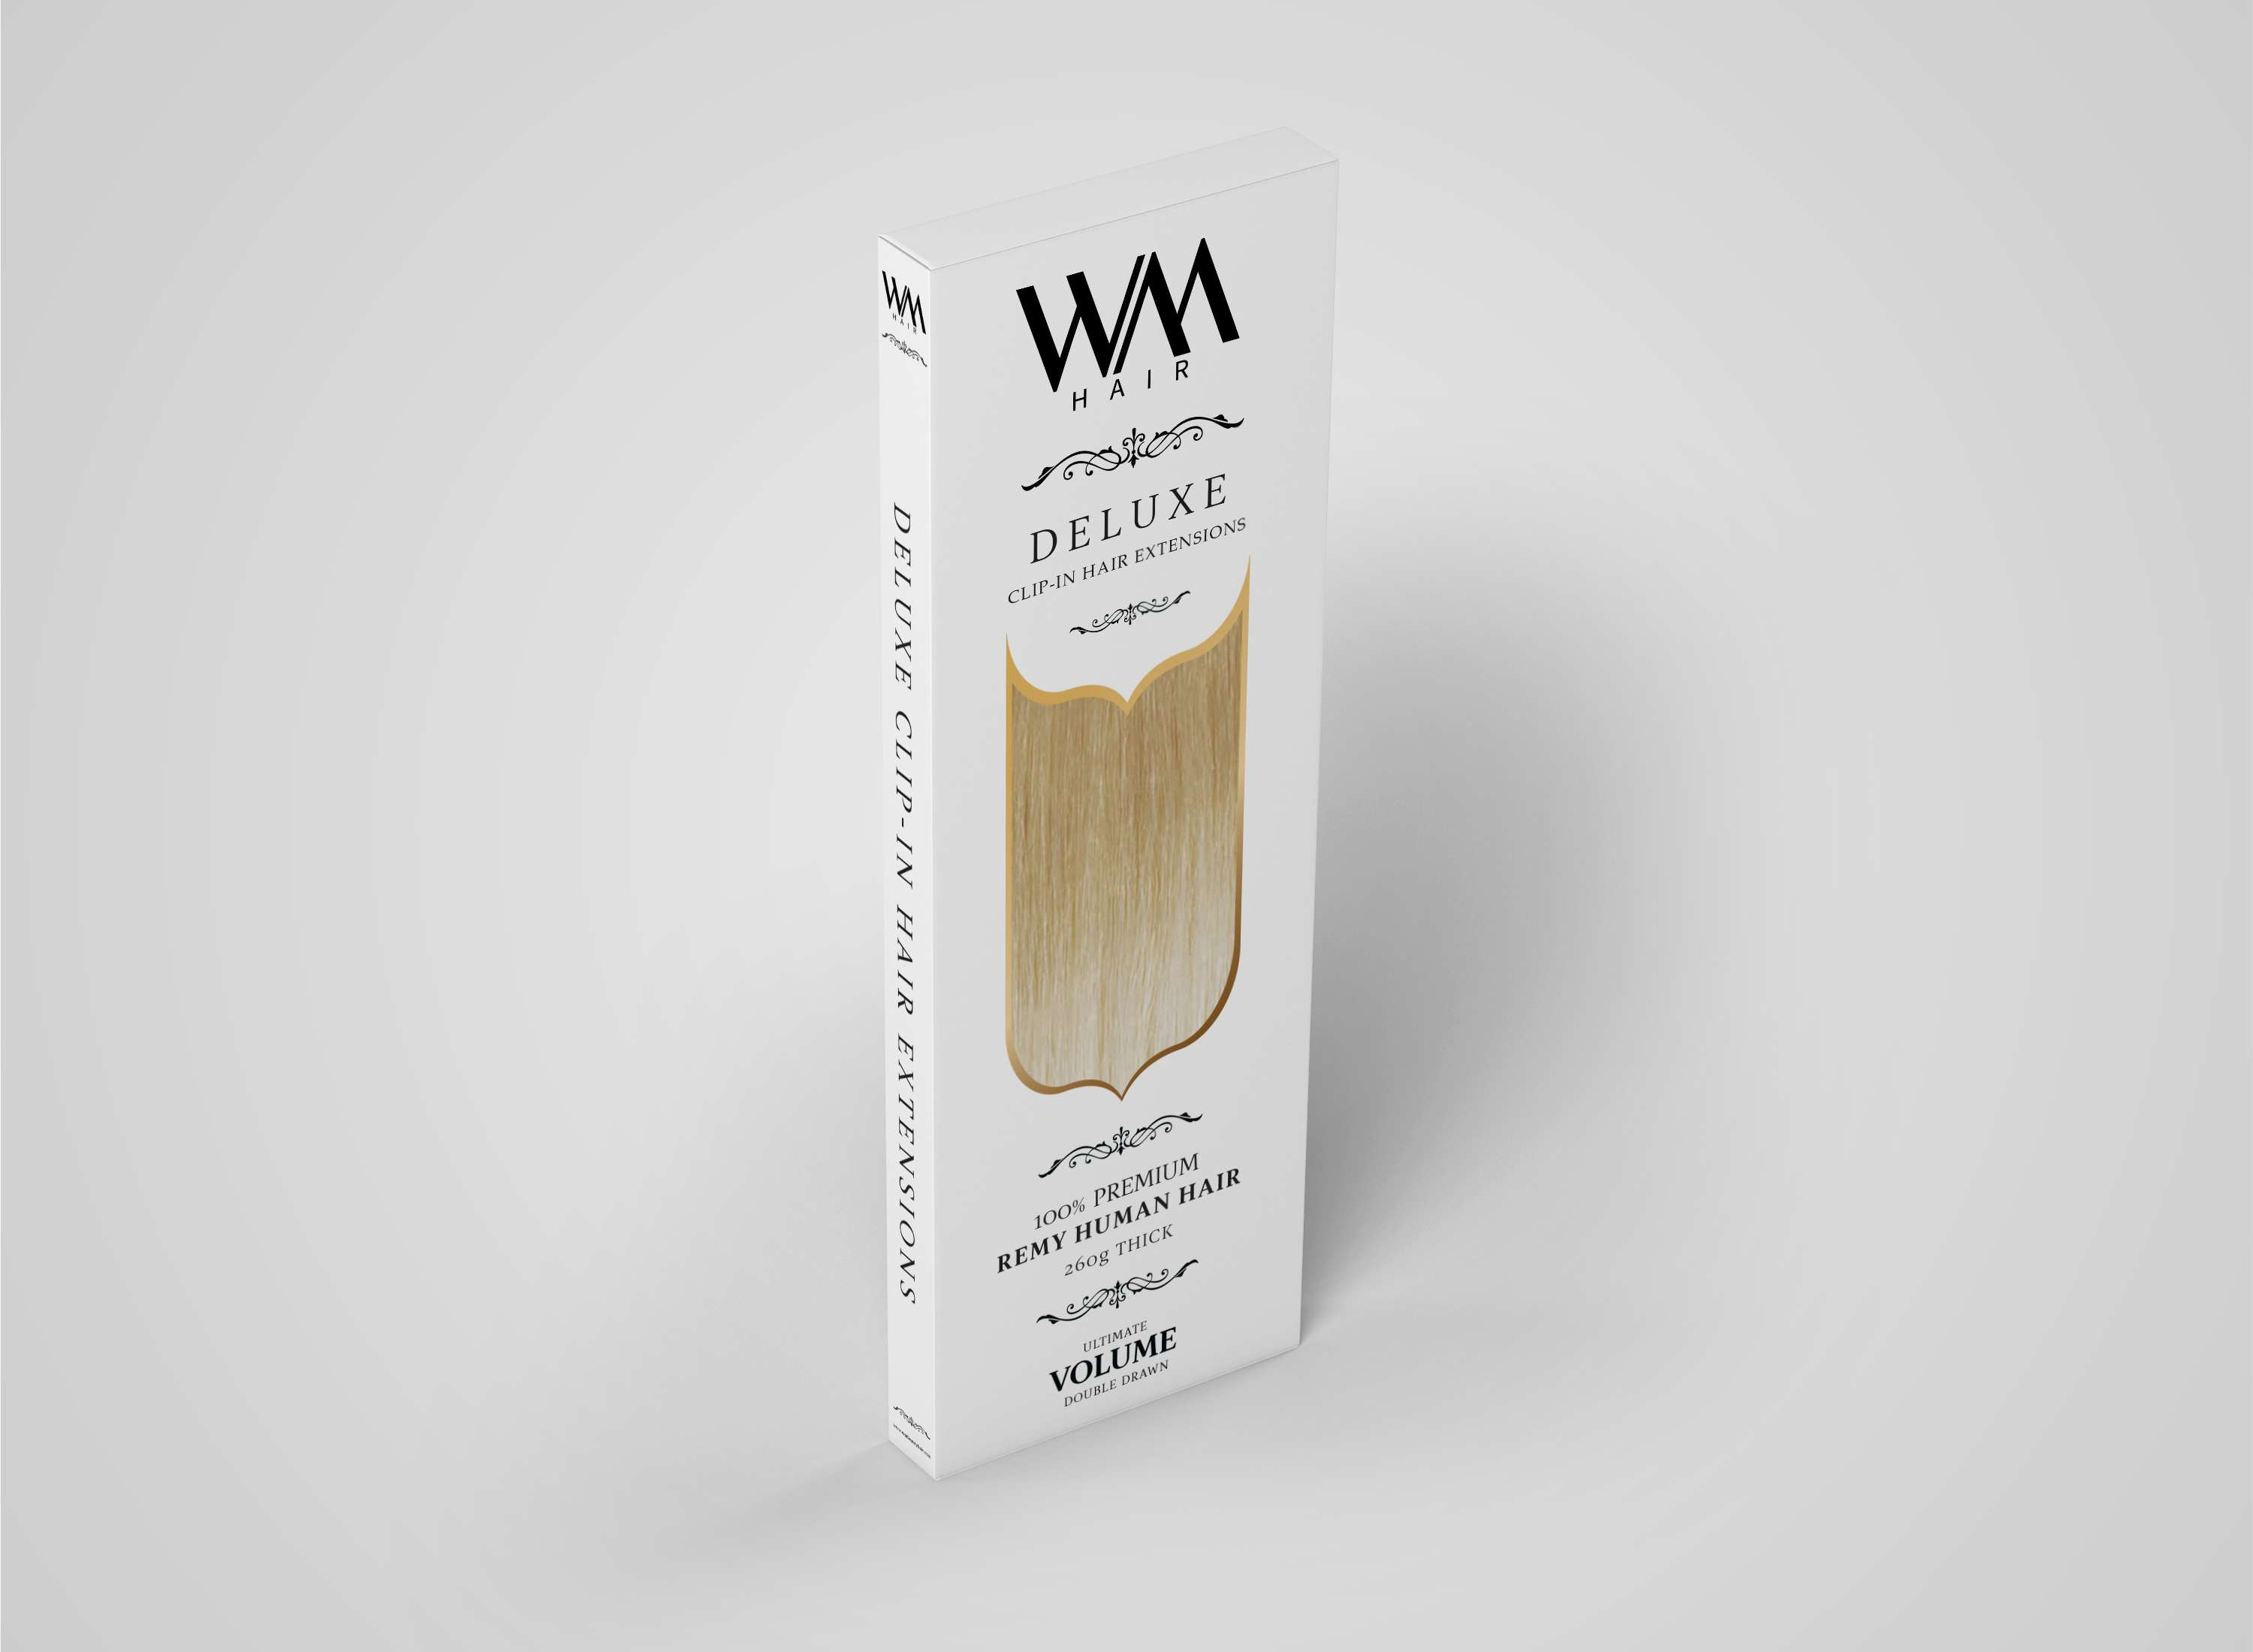 Packaging Amp Box Design For Hair Extensions Company